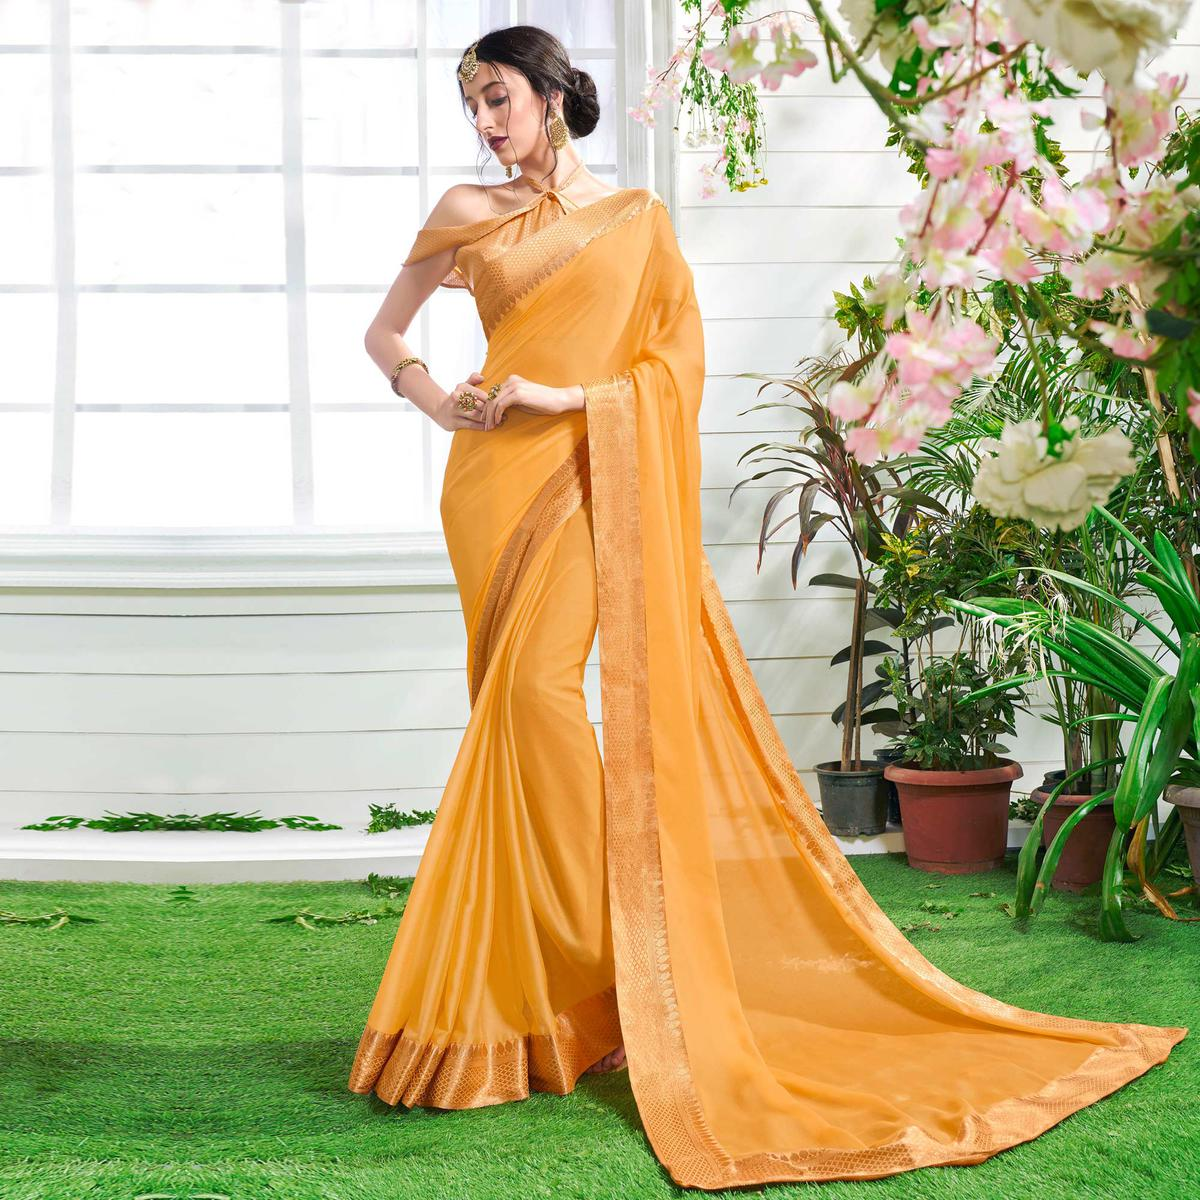 cda22c29d8f635 Buy Mystic Orange Colored Designer Party Wear Chiffon Saree. for womens  online India